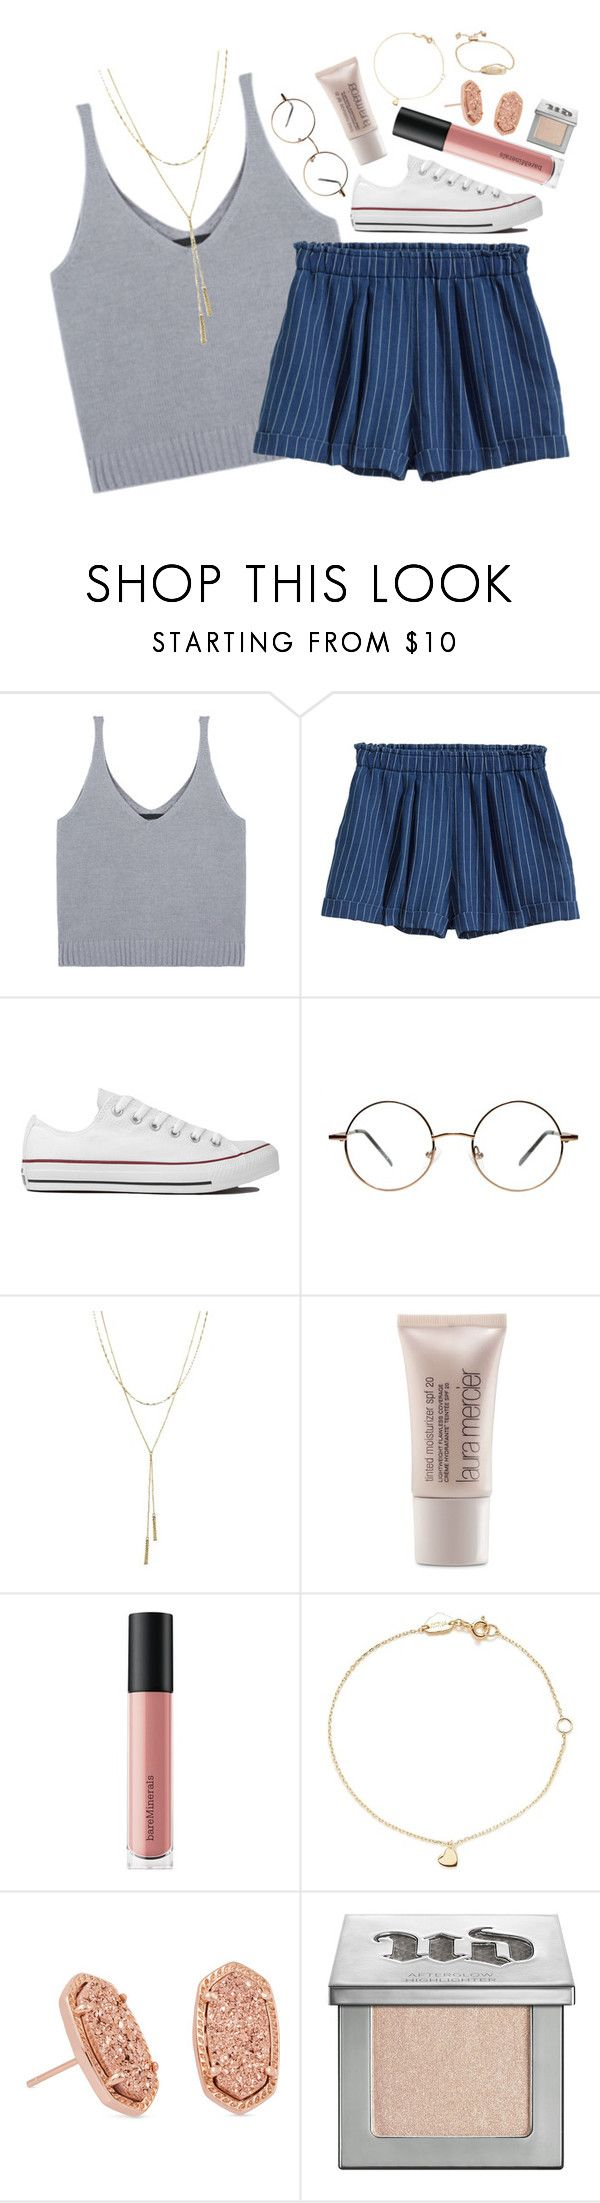 """I'm back"" by beingrach ❤ liked on Polyvore featuring H&M, Converse, Bloomingdale's, Laura Mercier, Bare Escentuals, Estella Bartlett, Kendra Scott and Urban Decay"